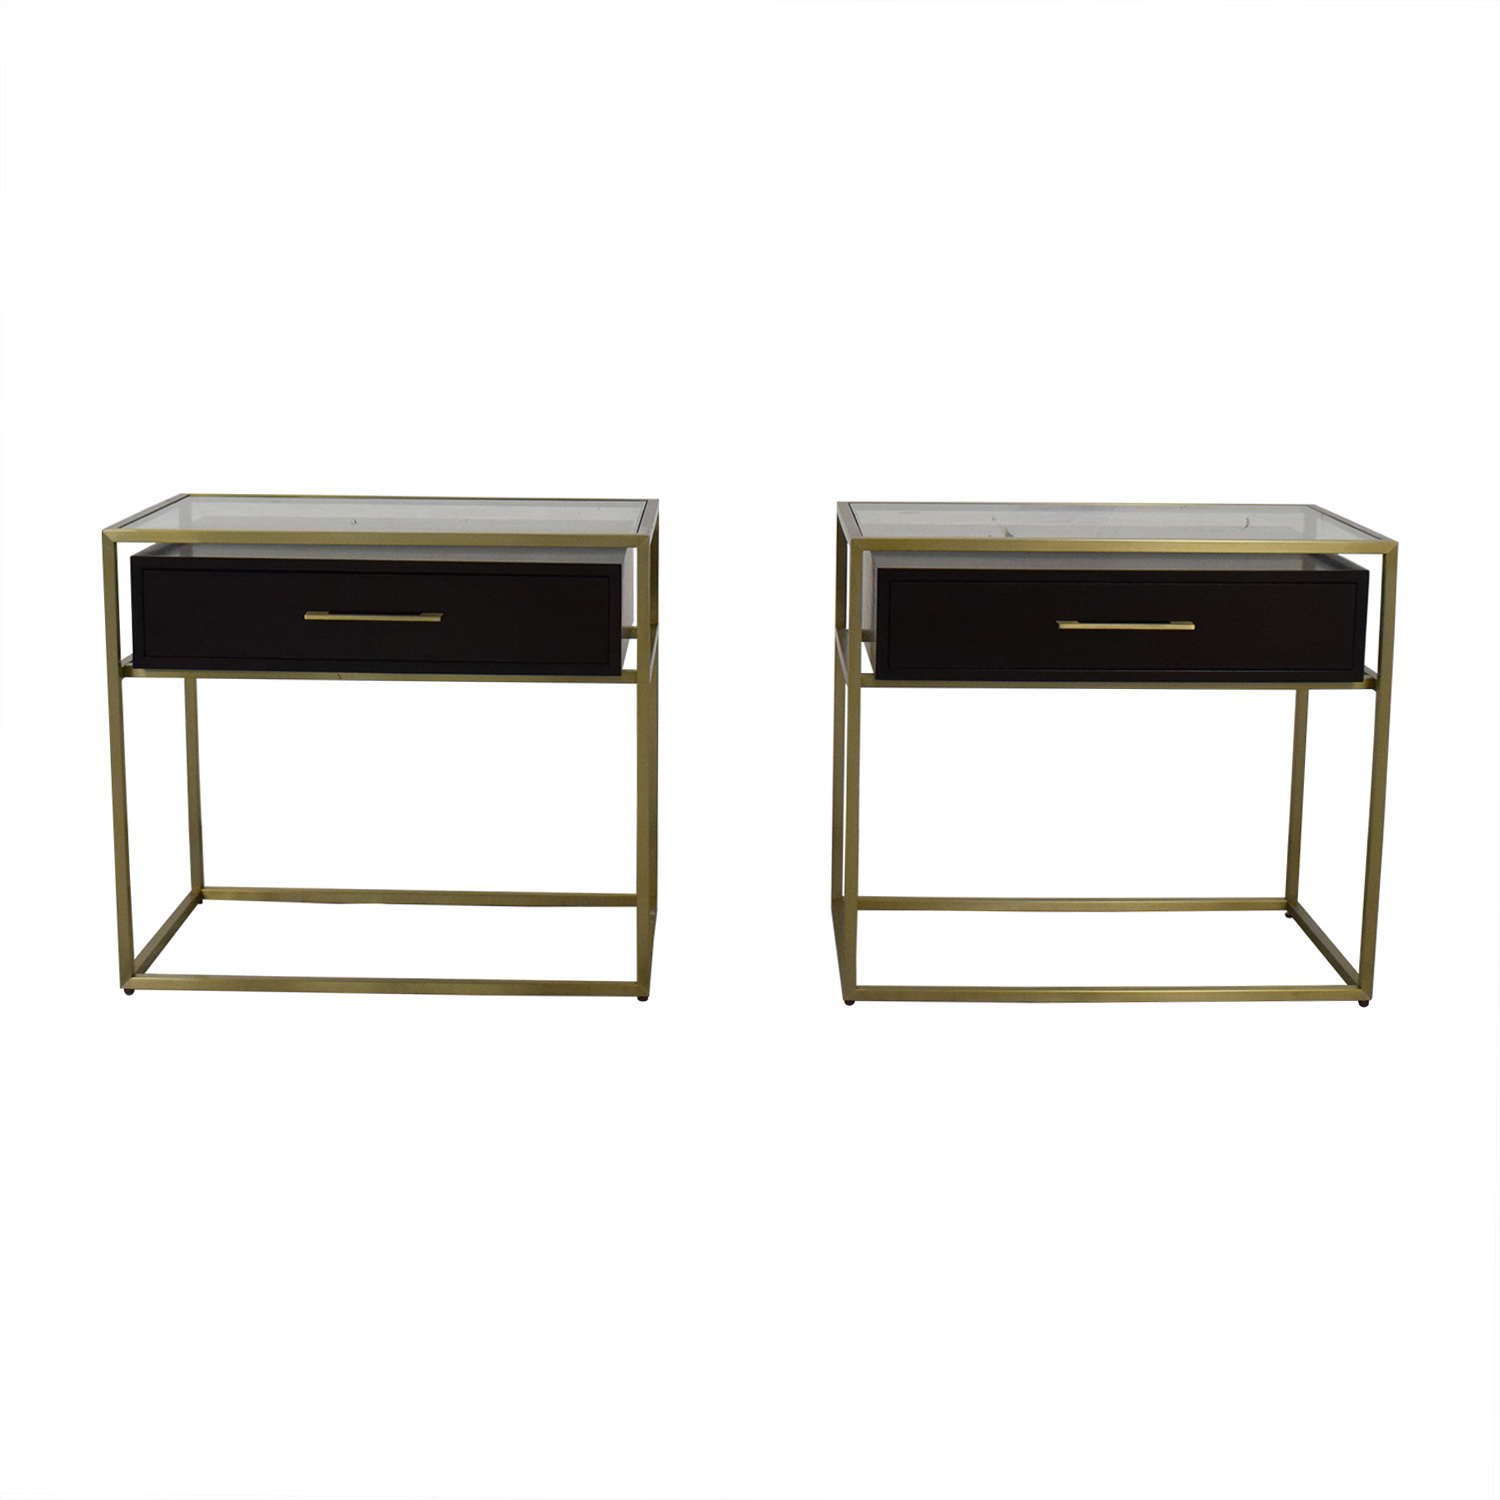 Macy's Jameson Nightstands / Tables